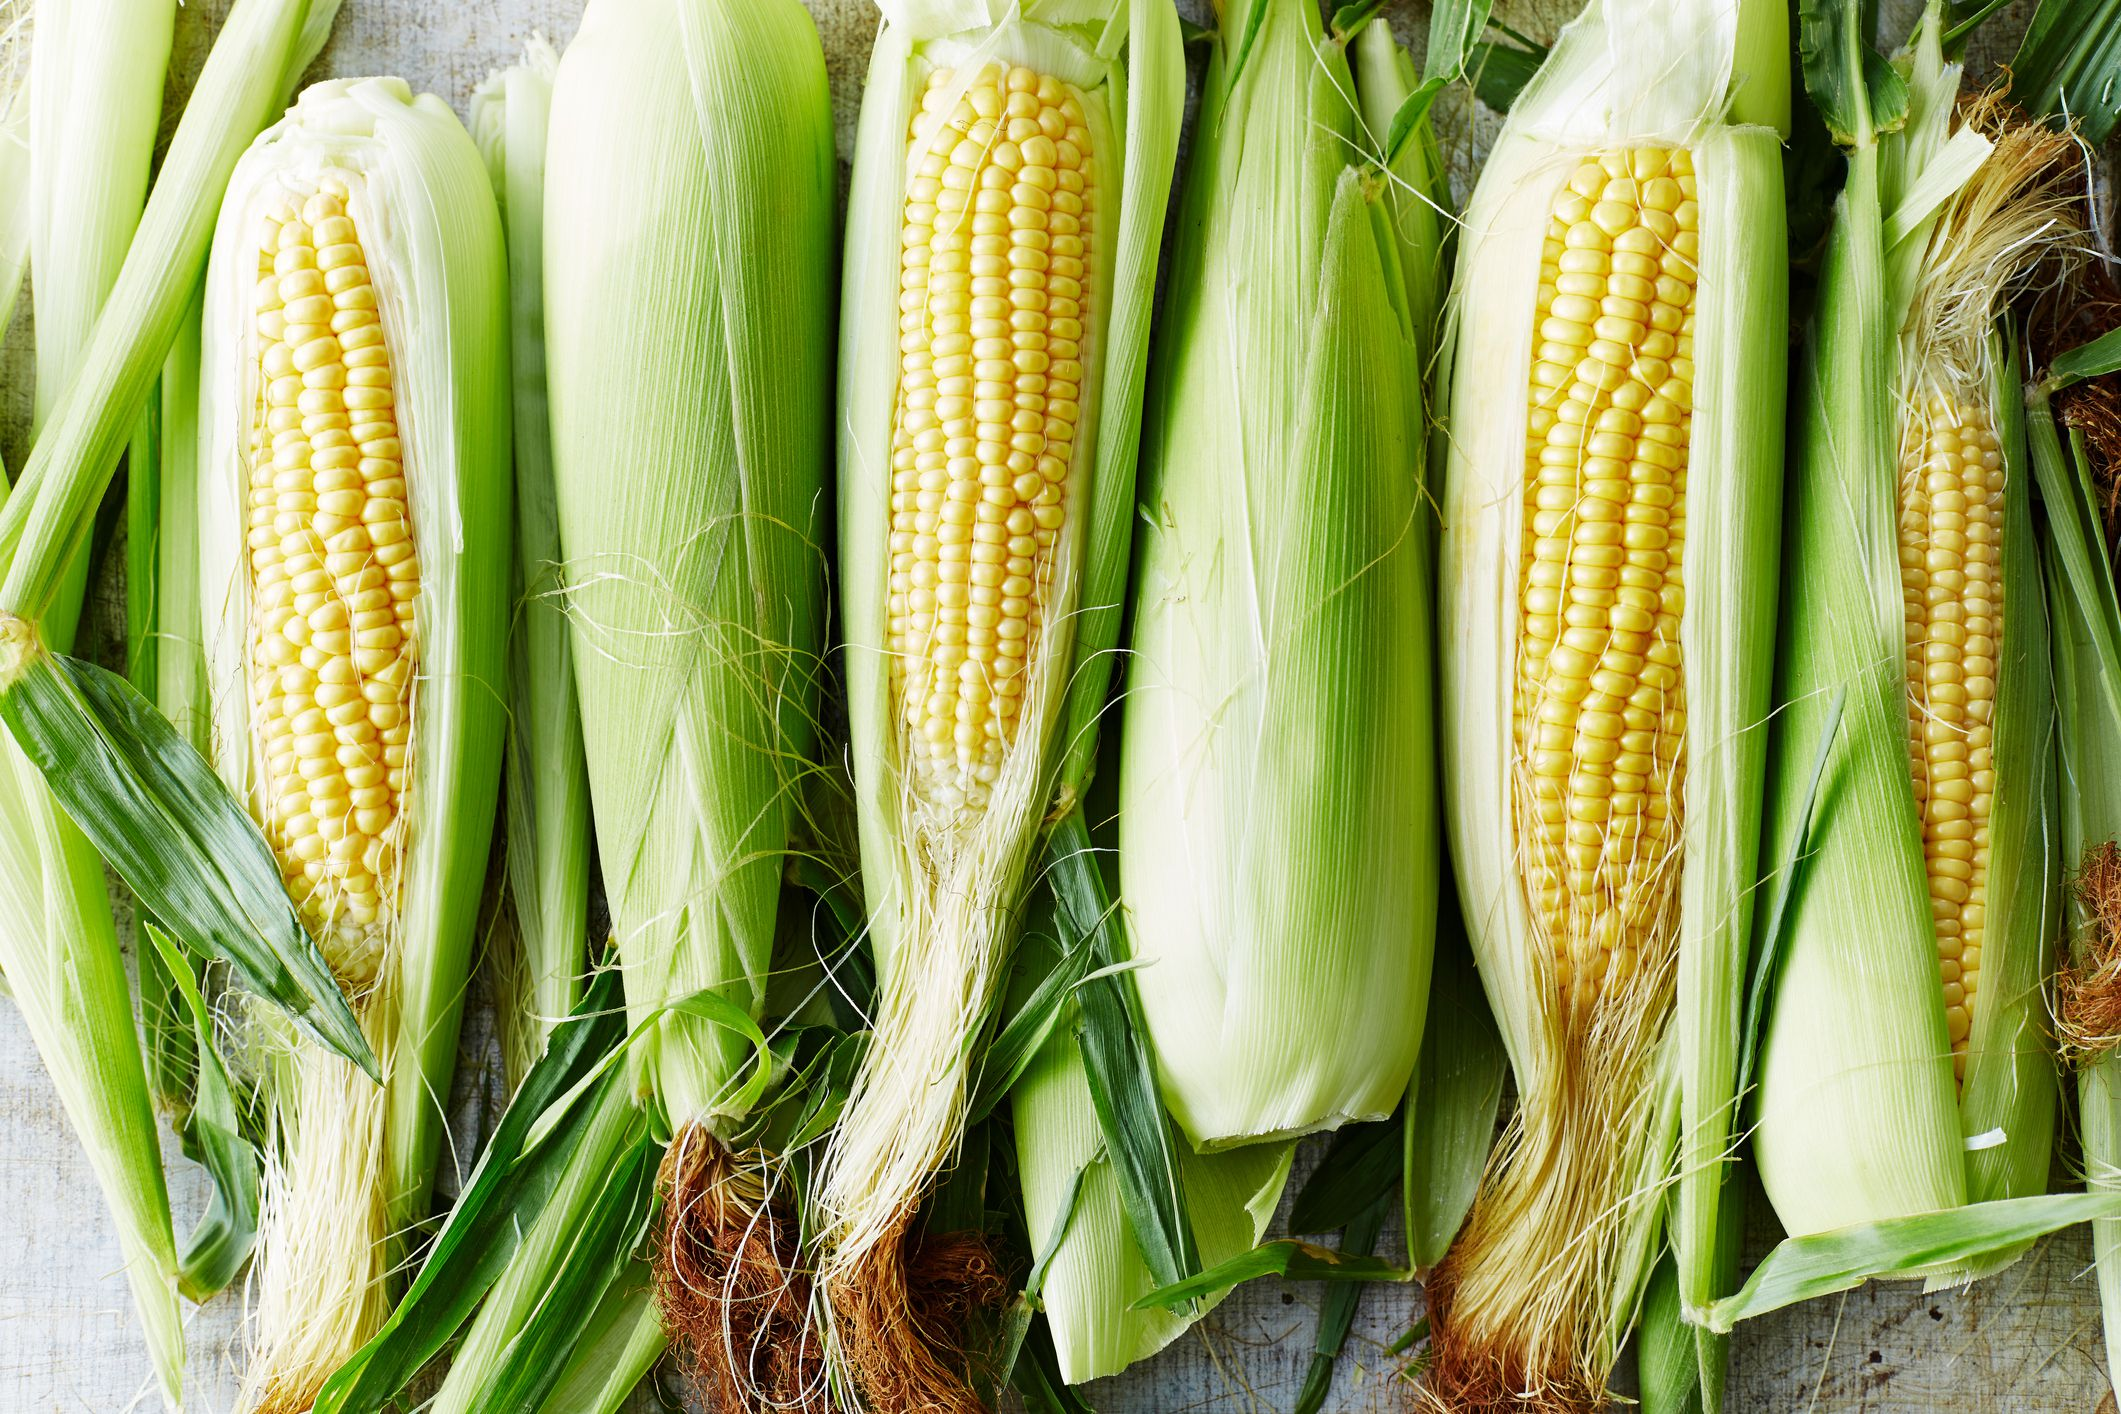 Harvard Scientists Say This Is the Unhealthiest Vegetable You Can Eat